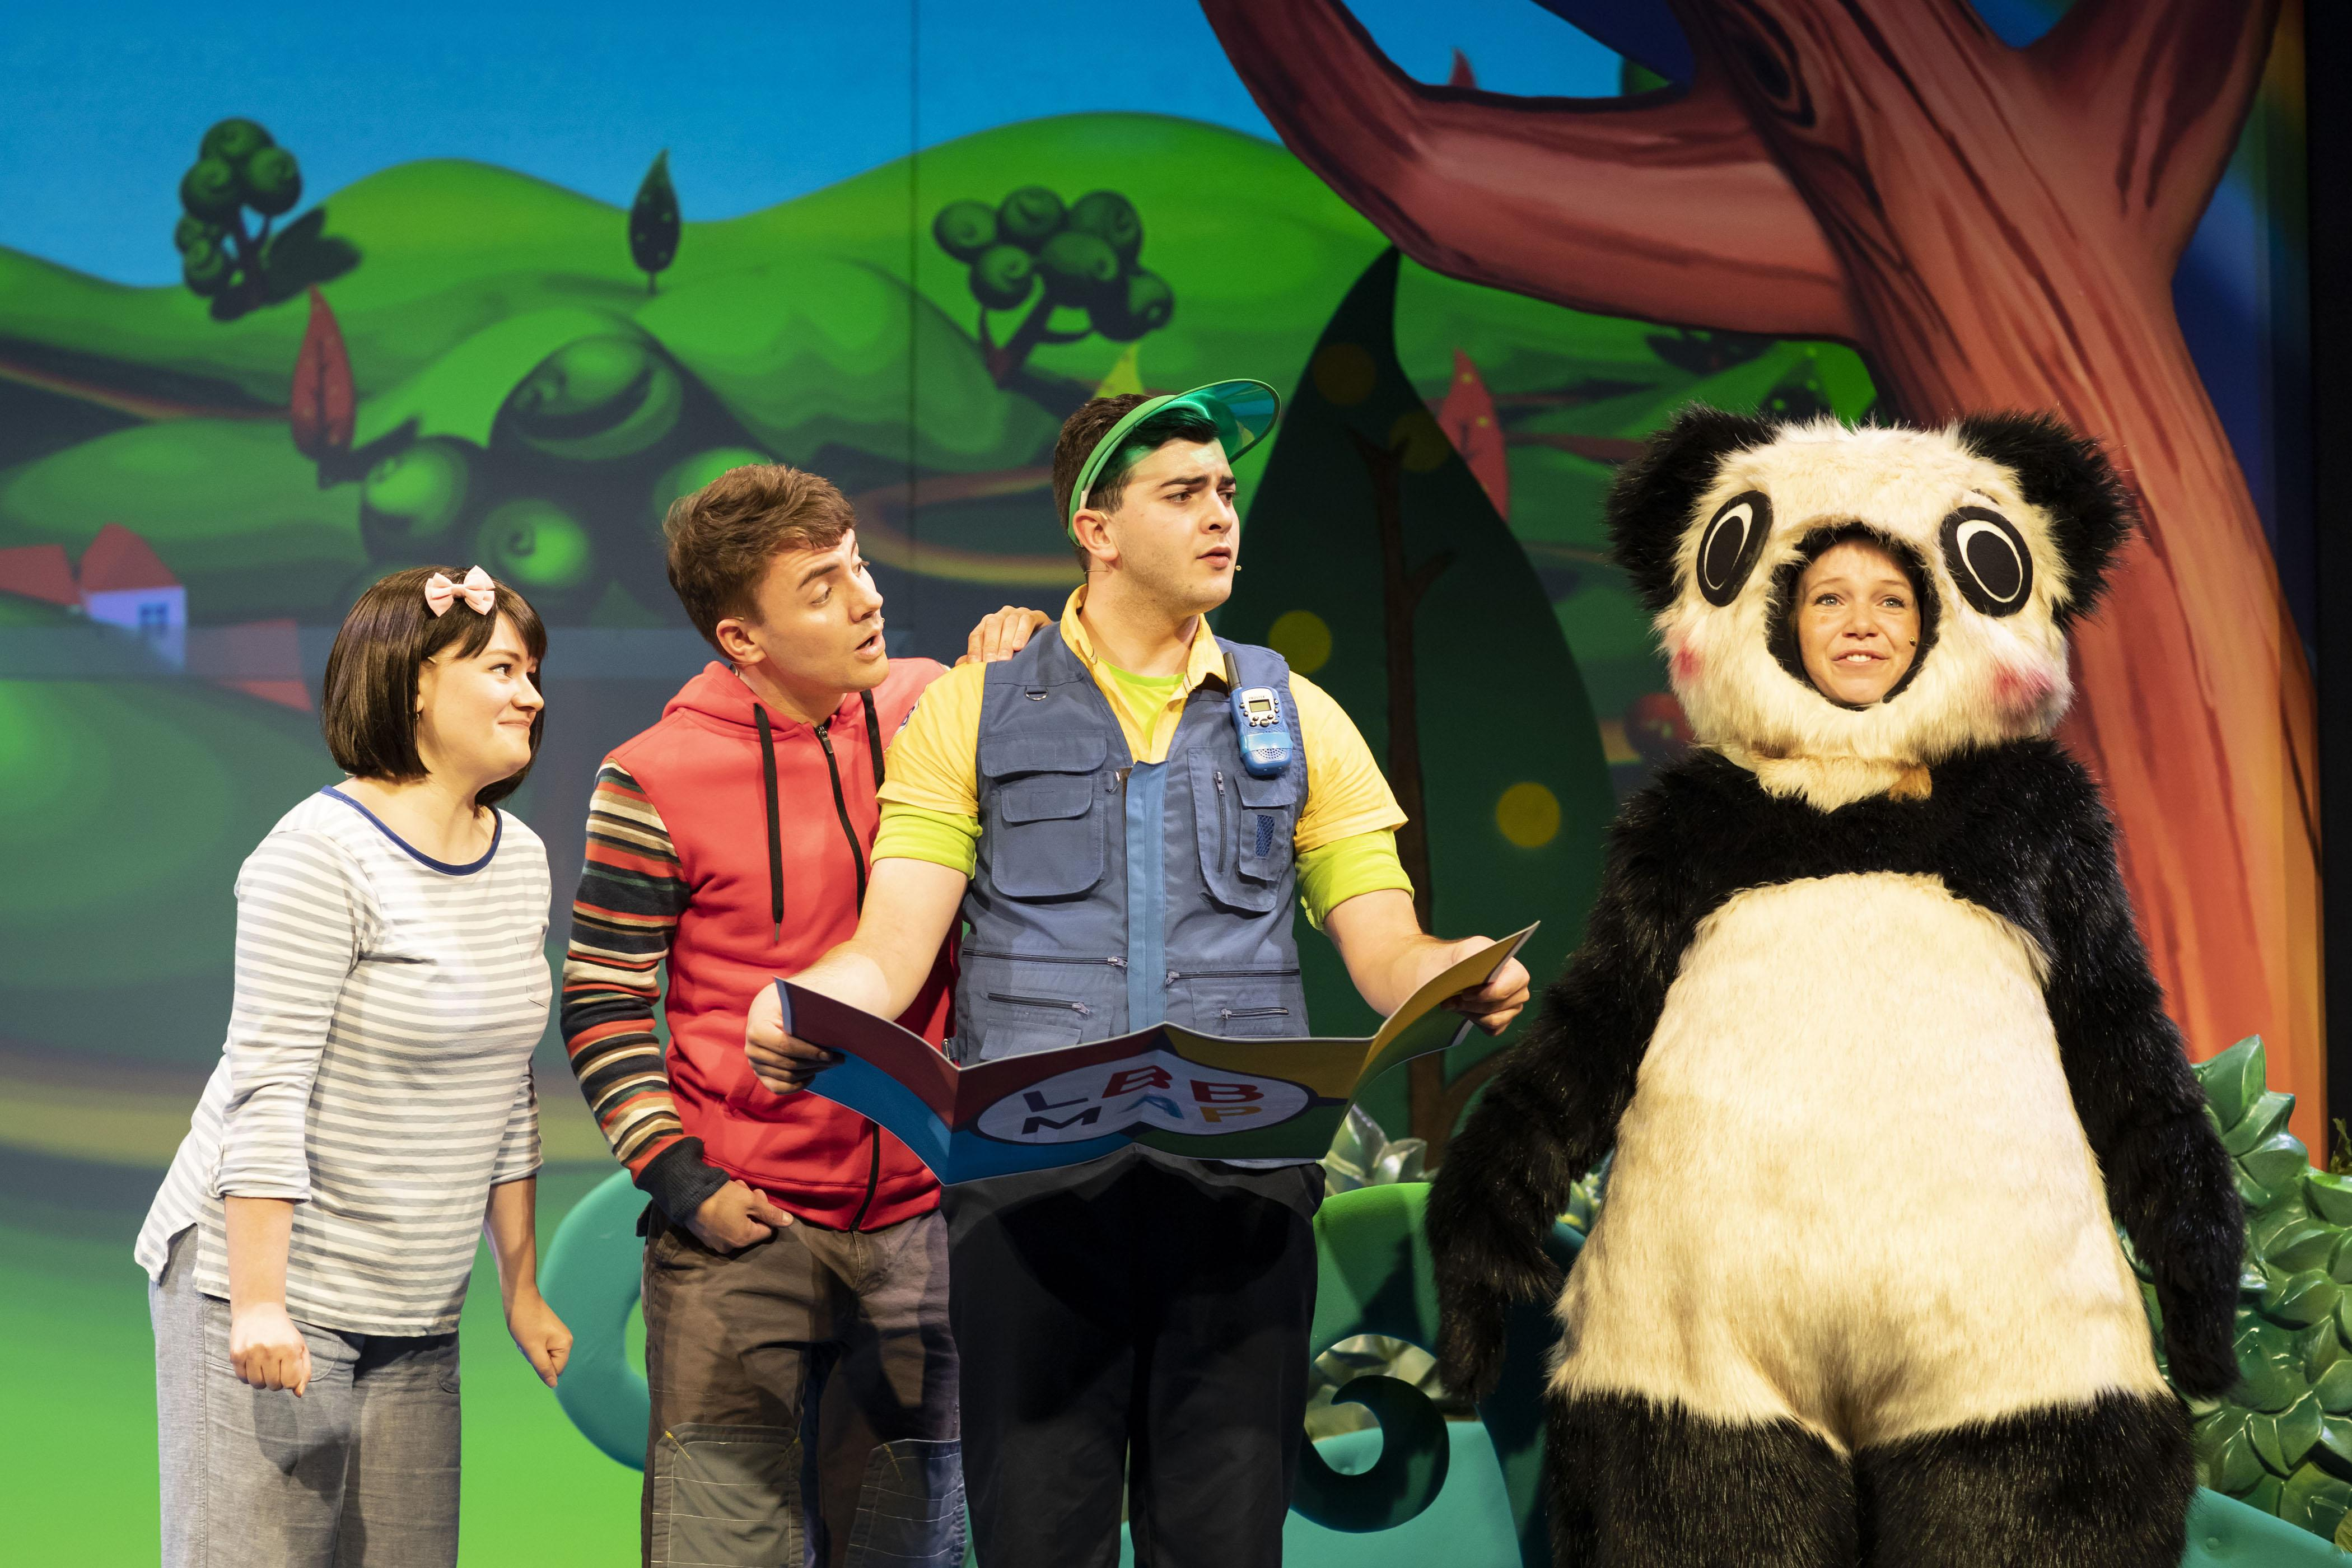 3. LITTLE BABY BUM LIVE. Rebecca Withers (Mia), Jack McNeill (Jacus), Henry James Cox (Tour Guide), Charlotte Cooper .jpg